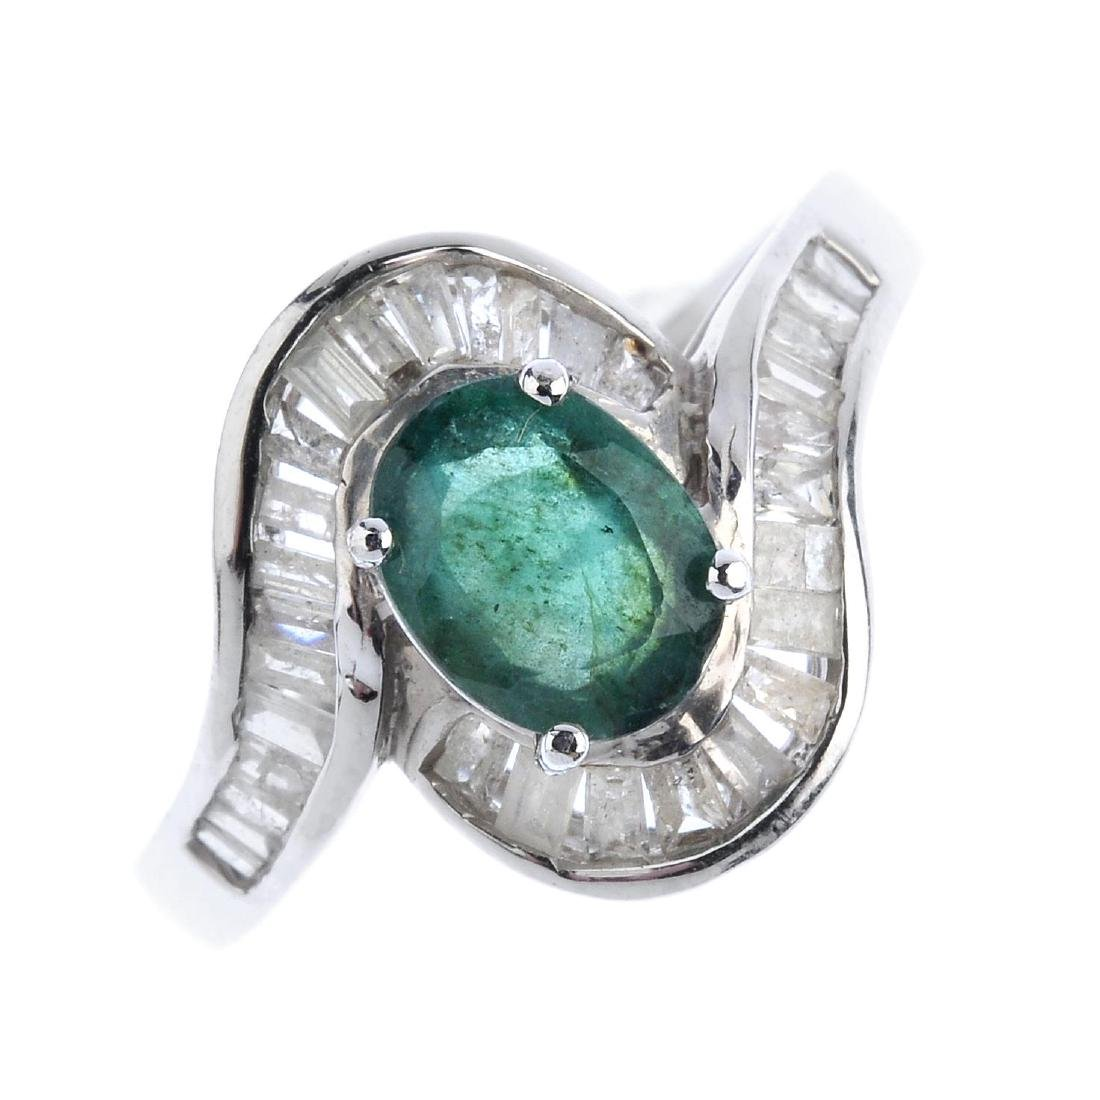 An emerald and diamond crossover ring. The oval-shape